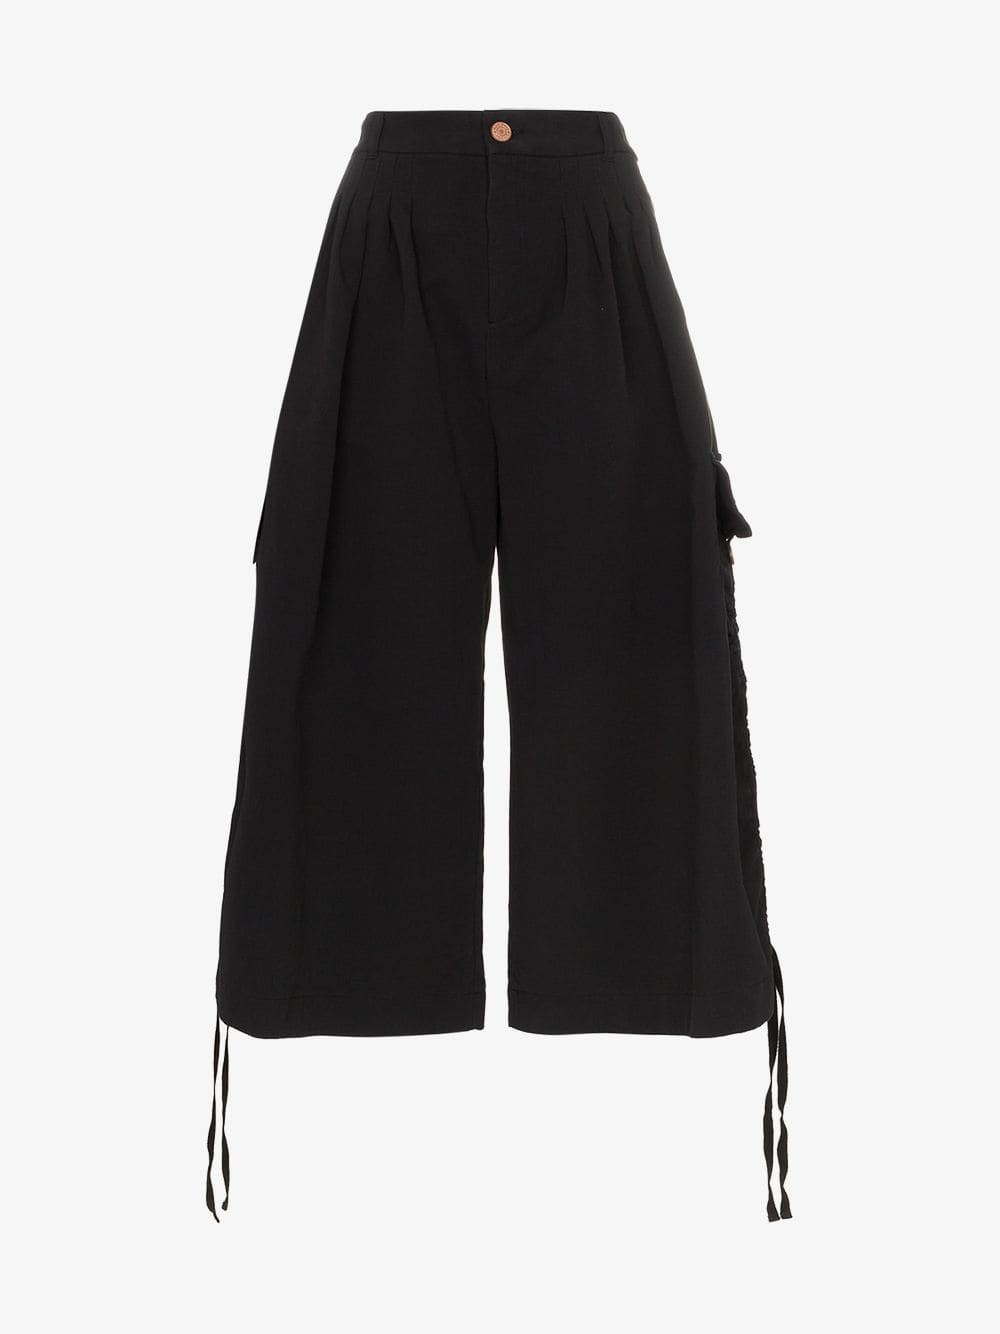 See By Chloé See By Chloé black wide leg cotton cargo trousers